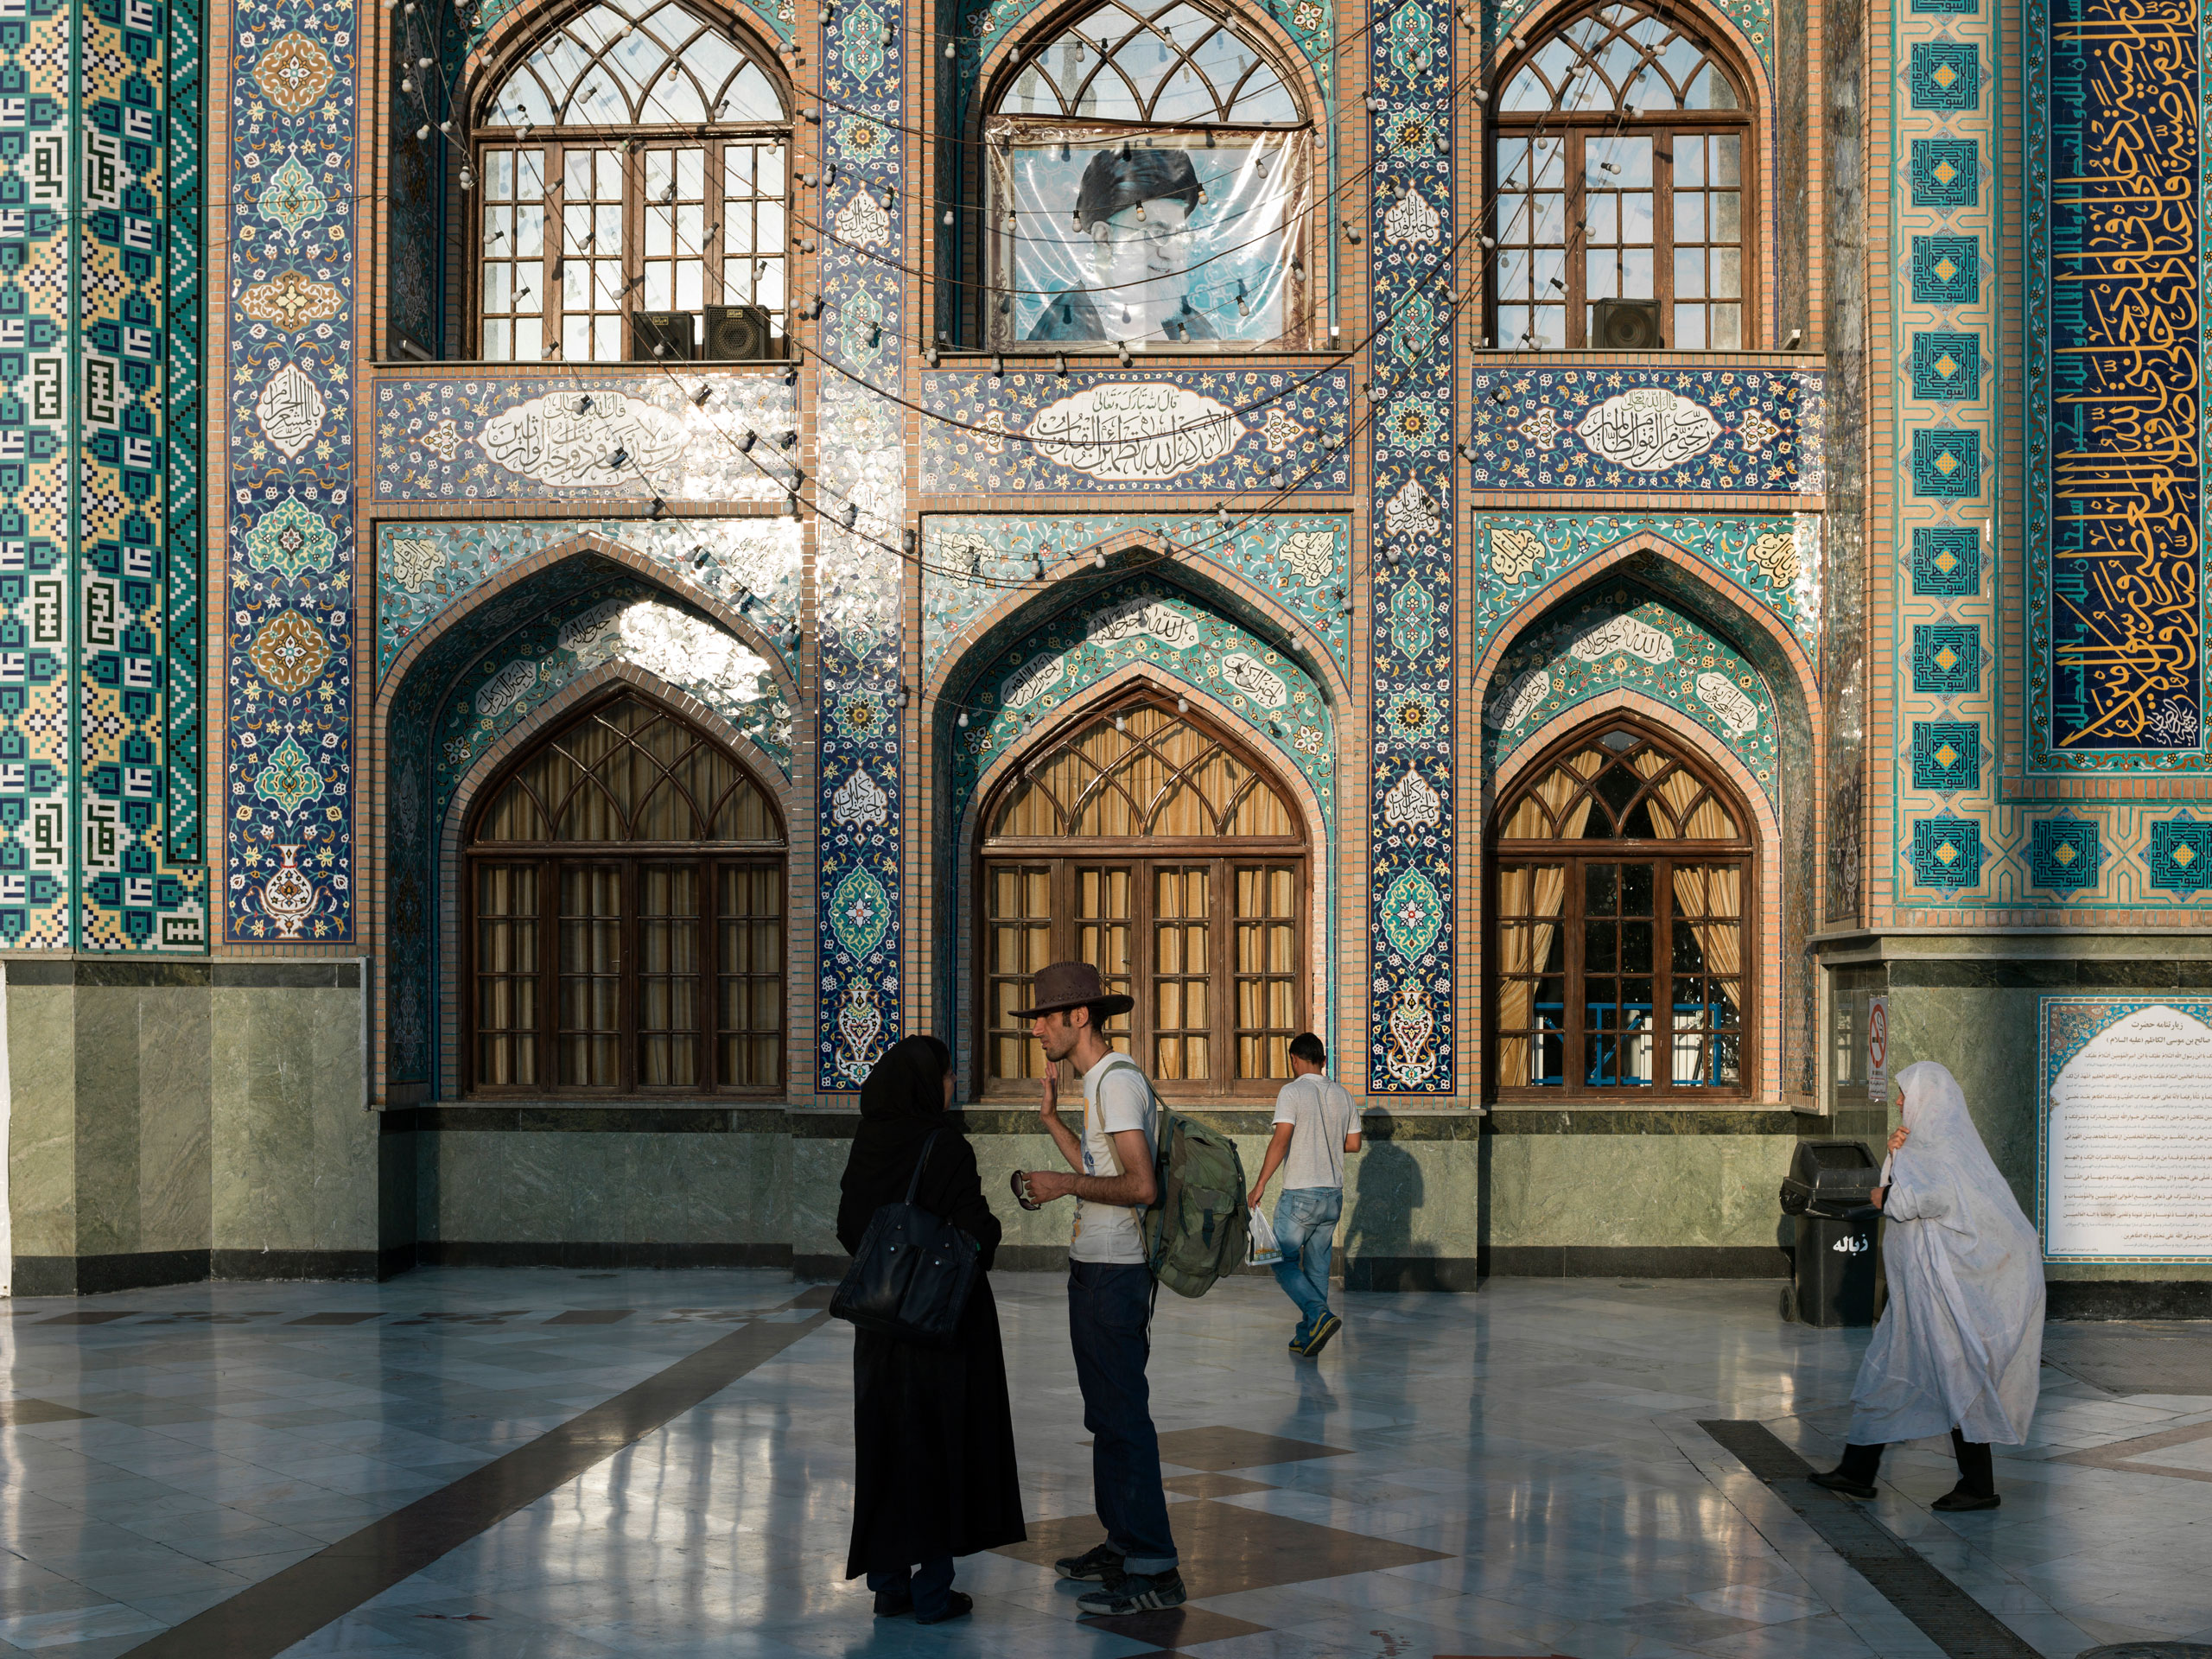 A young couple stand in front of the shrine Imāmzādeh Sāleh, located in Tehran's most northern square, Tajrish, in the Shemiran district.